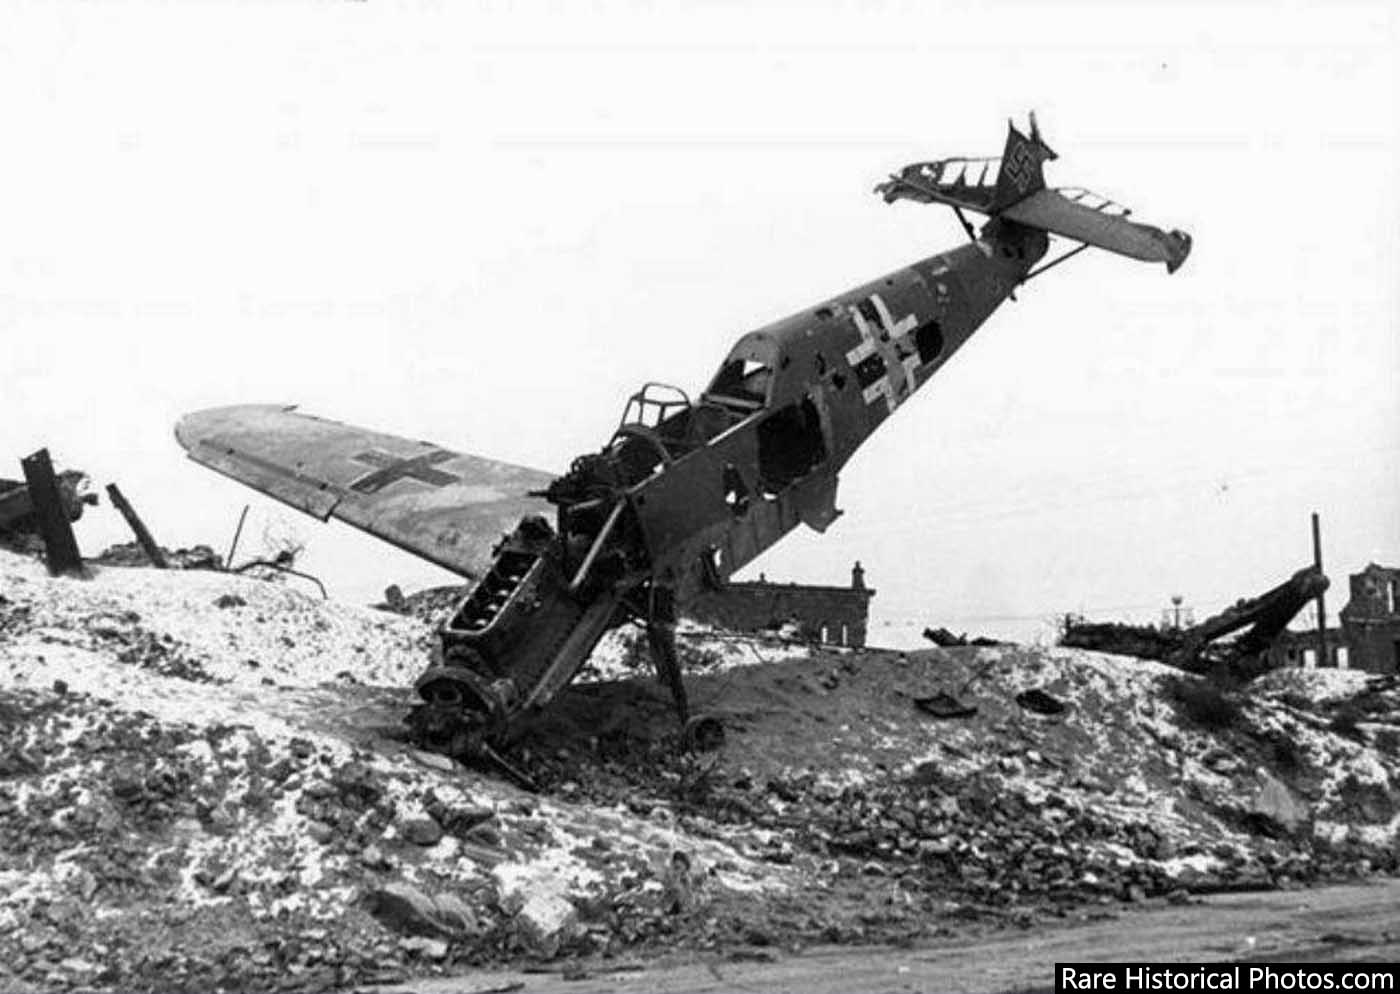 The end of Hitler's dream. A downed German plane in Stalingrad.